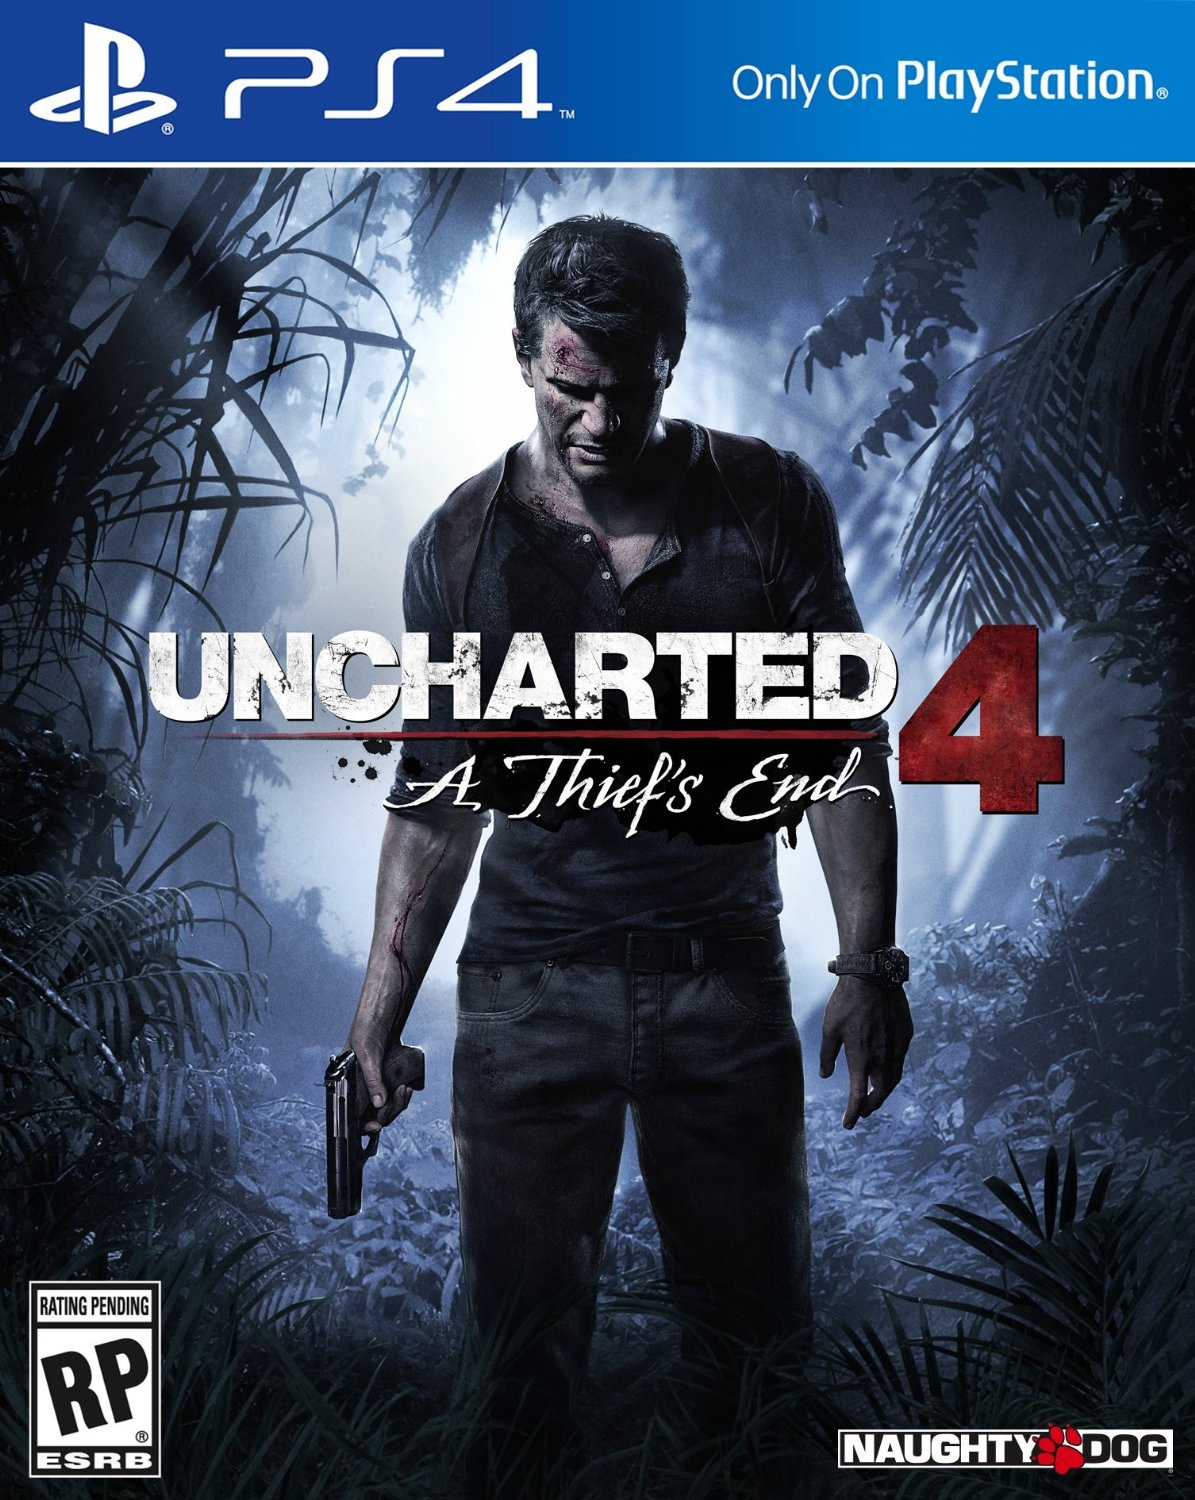 Image result for uncharted 4 game case